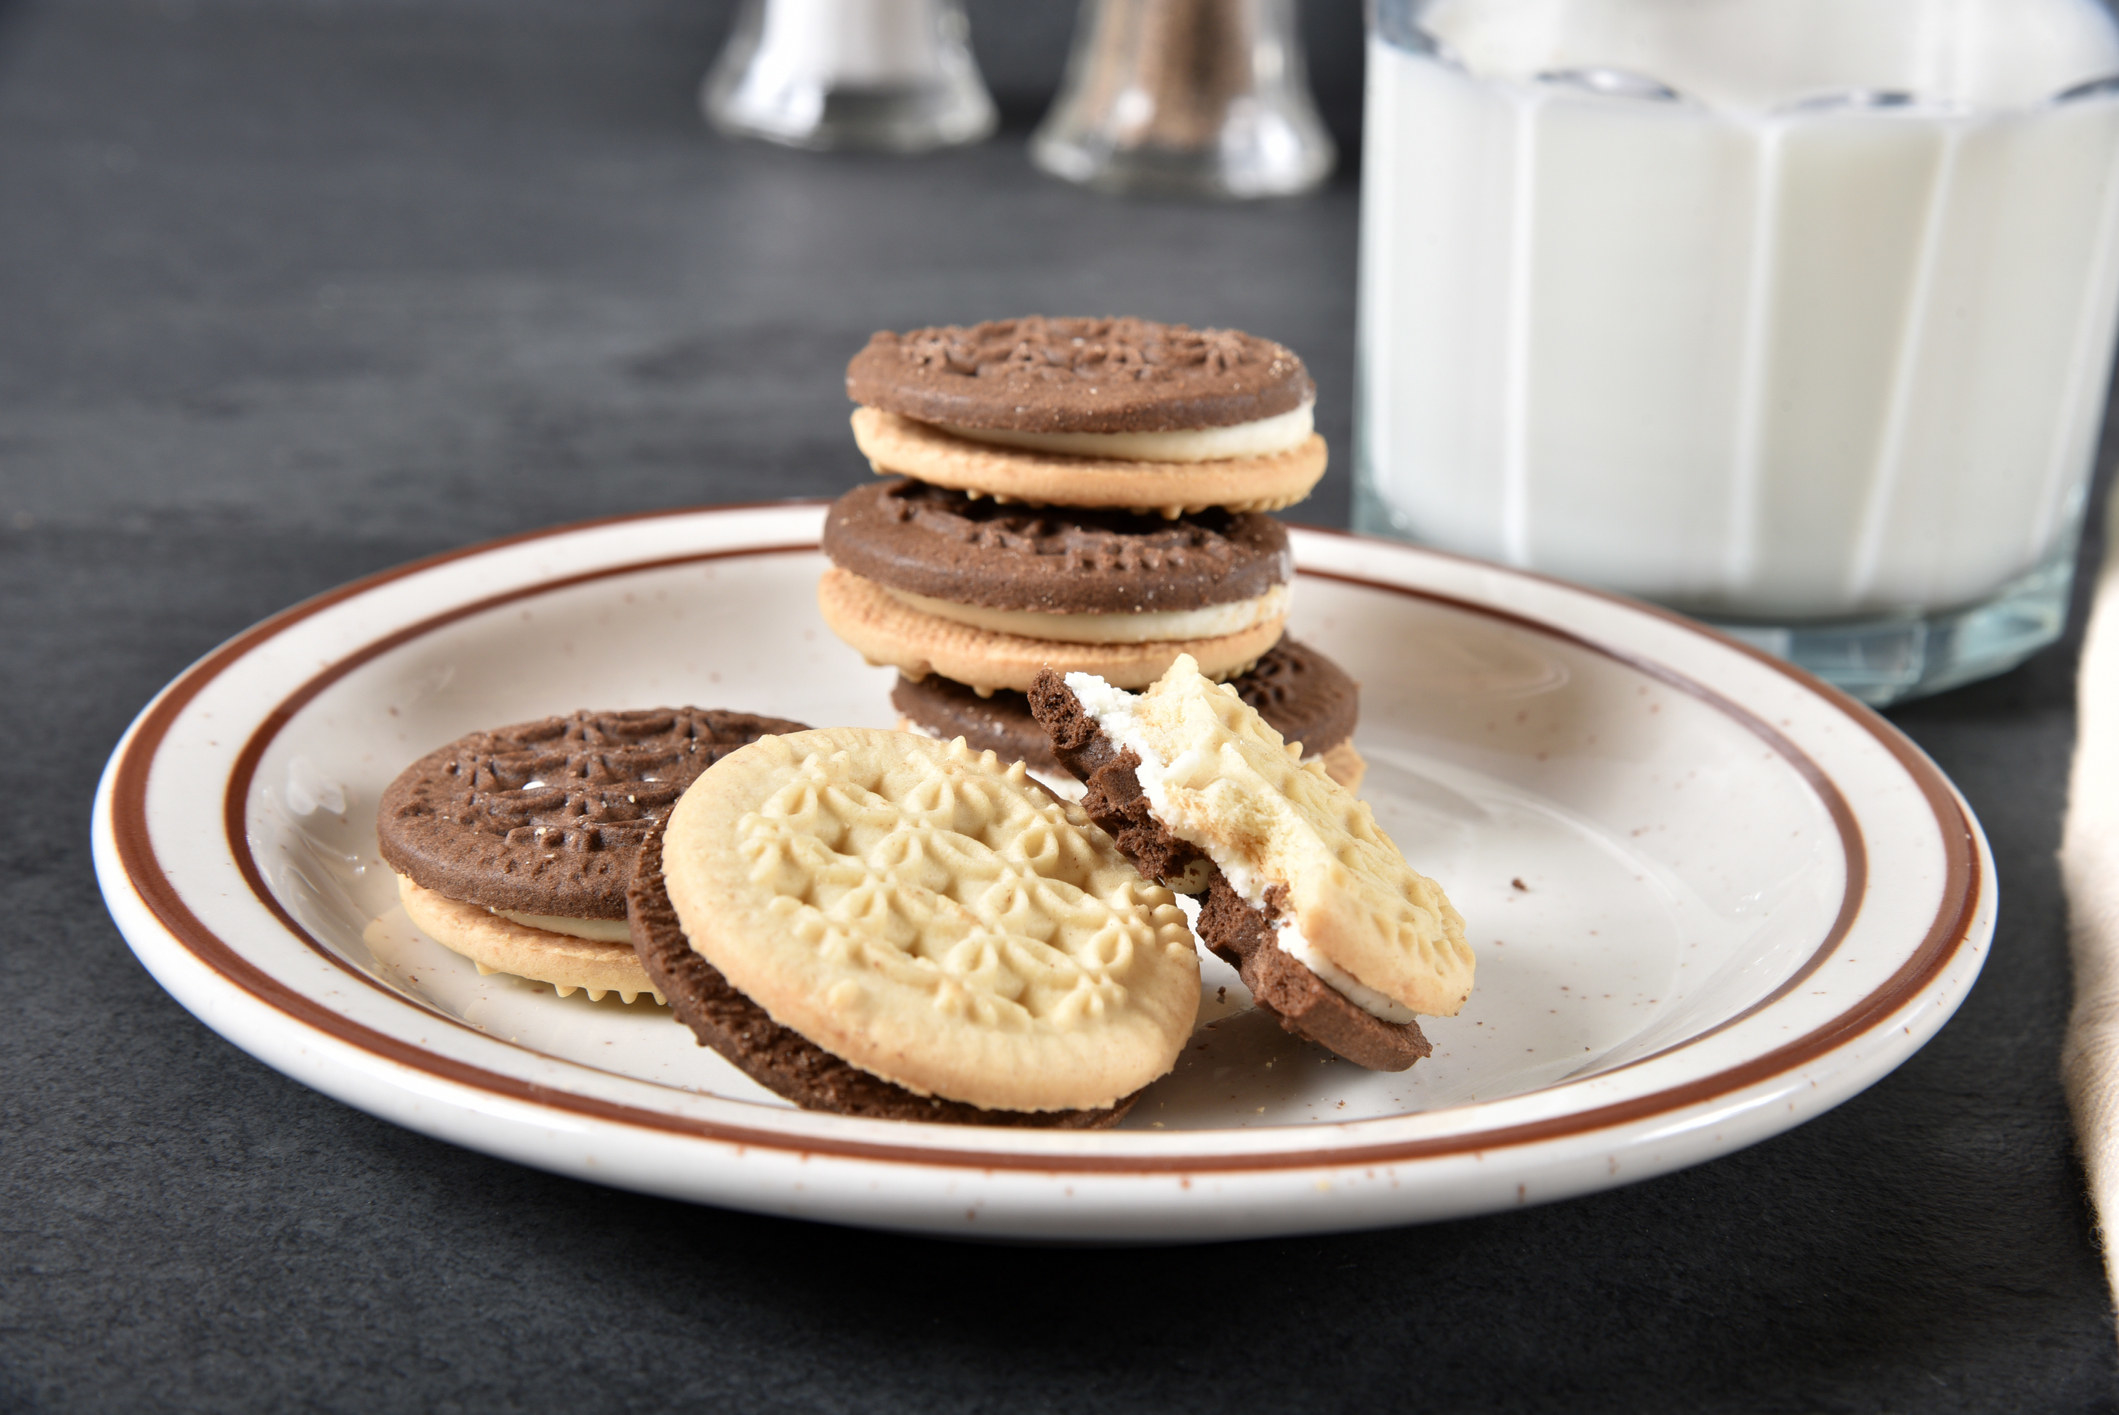 A stack of vanilla and chocolate sandwich cookies on plate next to a glass of milk